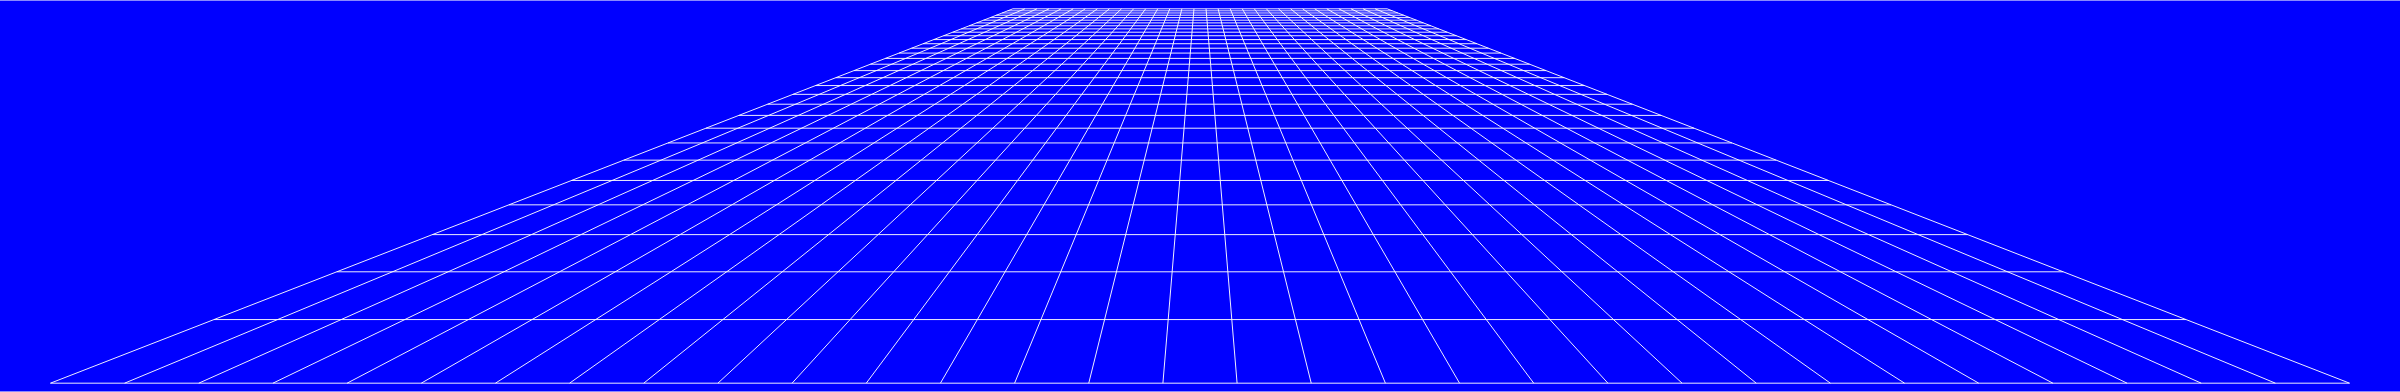 80s grid png. Clipart perspective flat blue